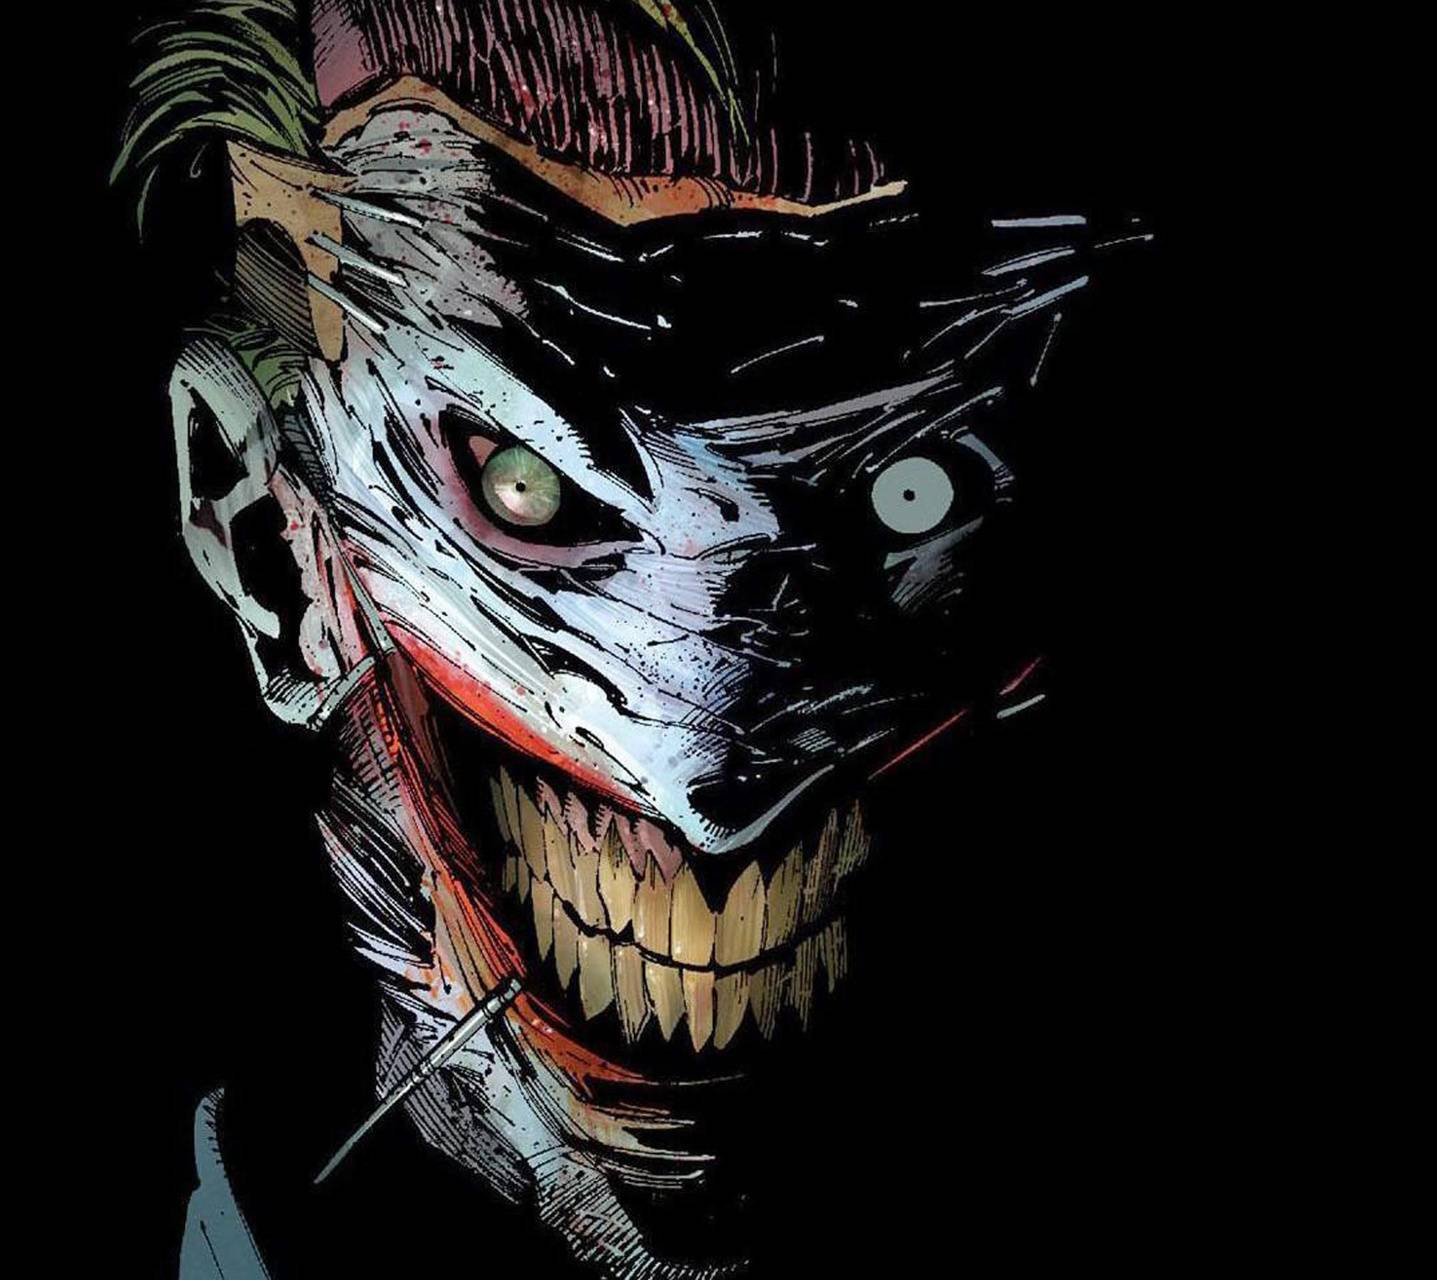 Joker New 52 Wallpaper by totilio - b9 - Free on ZEDGE™New 52 Joker Wallpaper